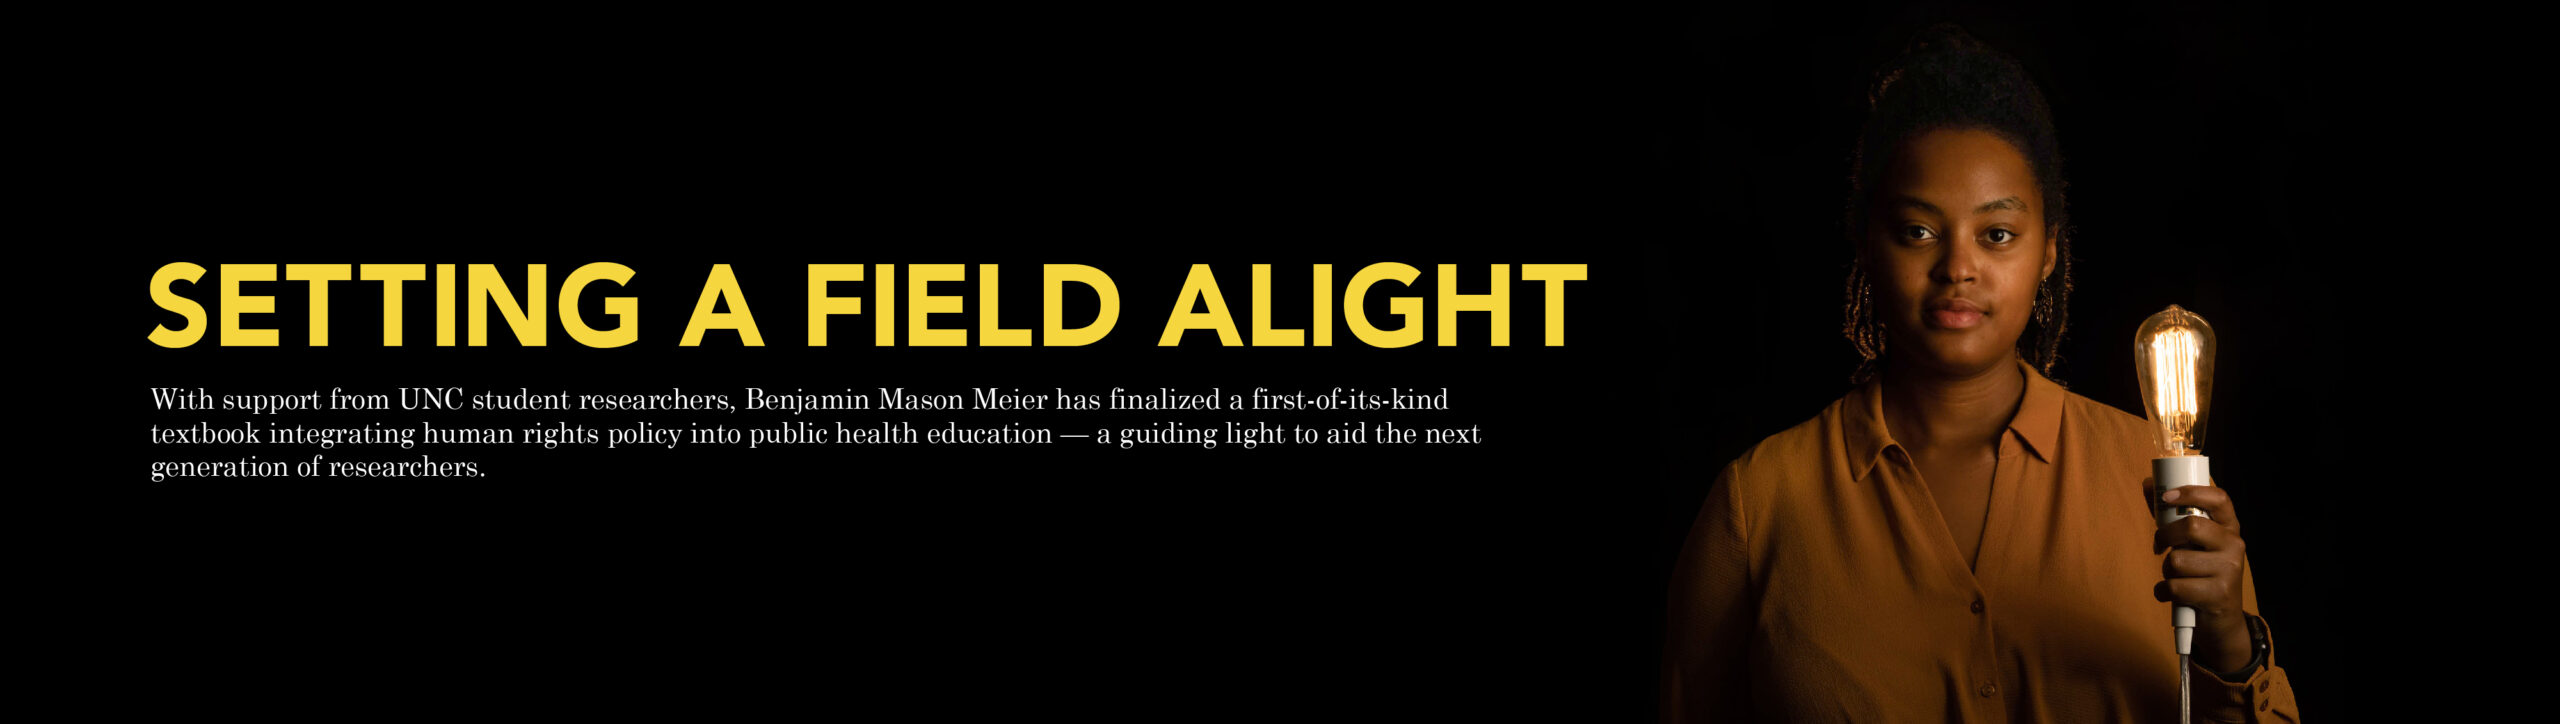 "Main feature banner for the story ""Setting a Field Alight"" with an image of Lenore Hango holding a lightbuld, which is lit-up, illuminating her face . The description for this story reads: ""With support from UNC student researchers, Benjamin Mason Meier has finalized a first-of-its-kind textbook integrating human rights policy into public health education — a guiding light to aid the next generation of researchers."" Click here to read this story."